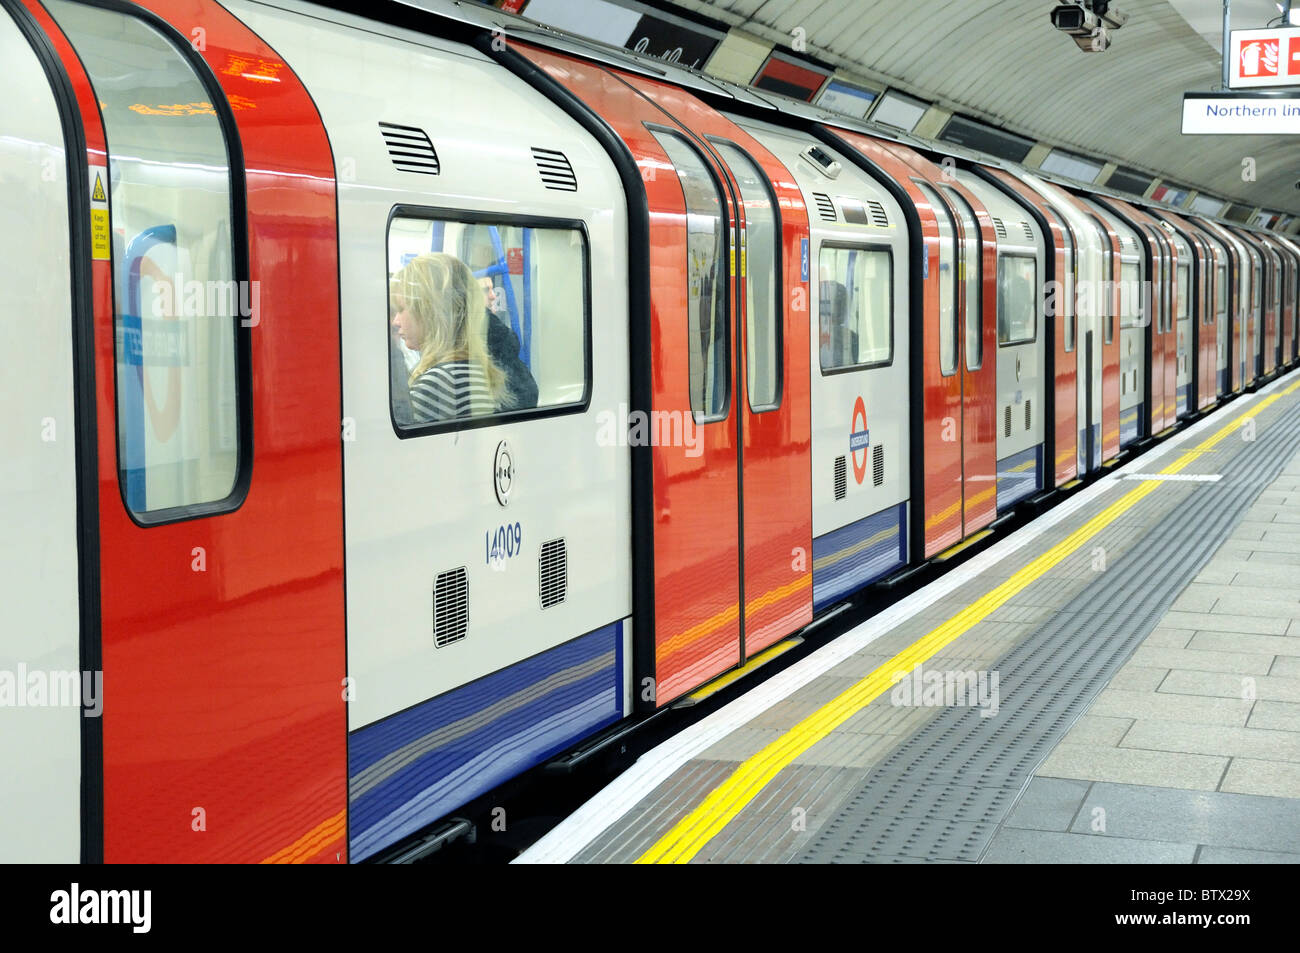 Southbound Victoria line train with doors closed Warren Street Station London England UK - Stock Image